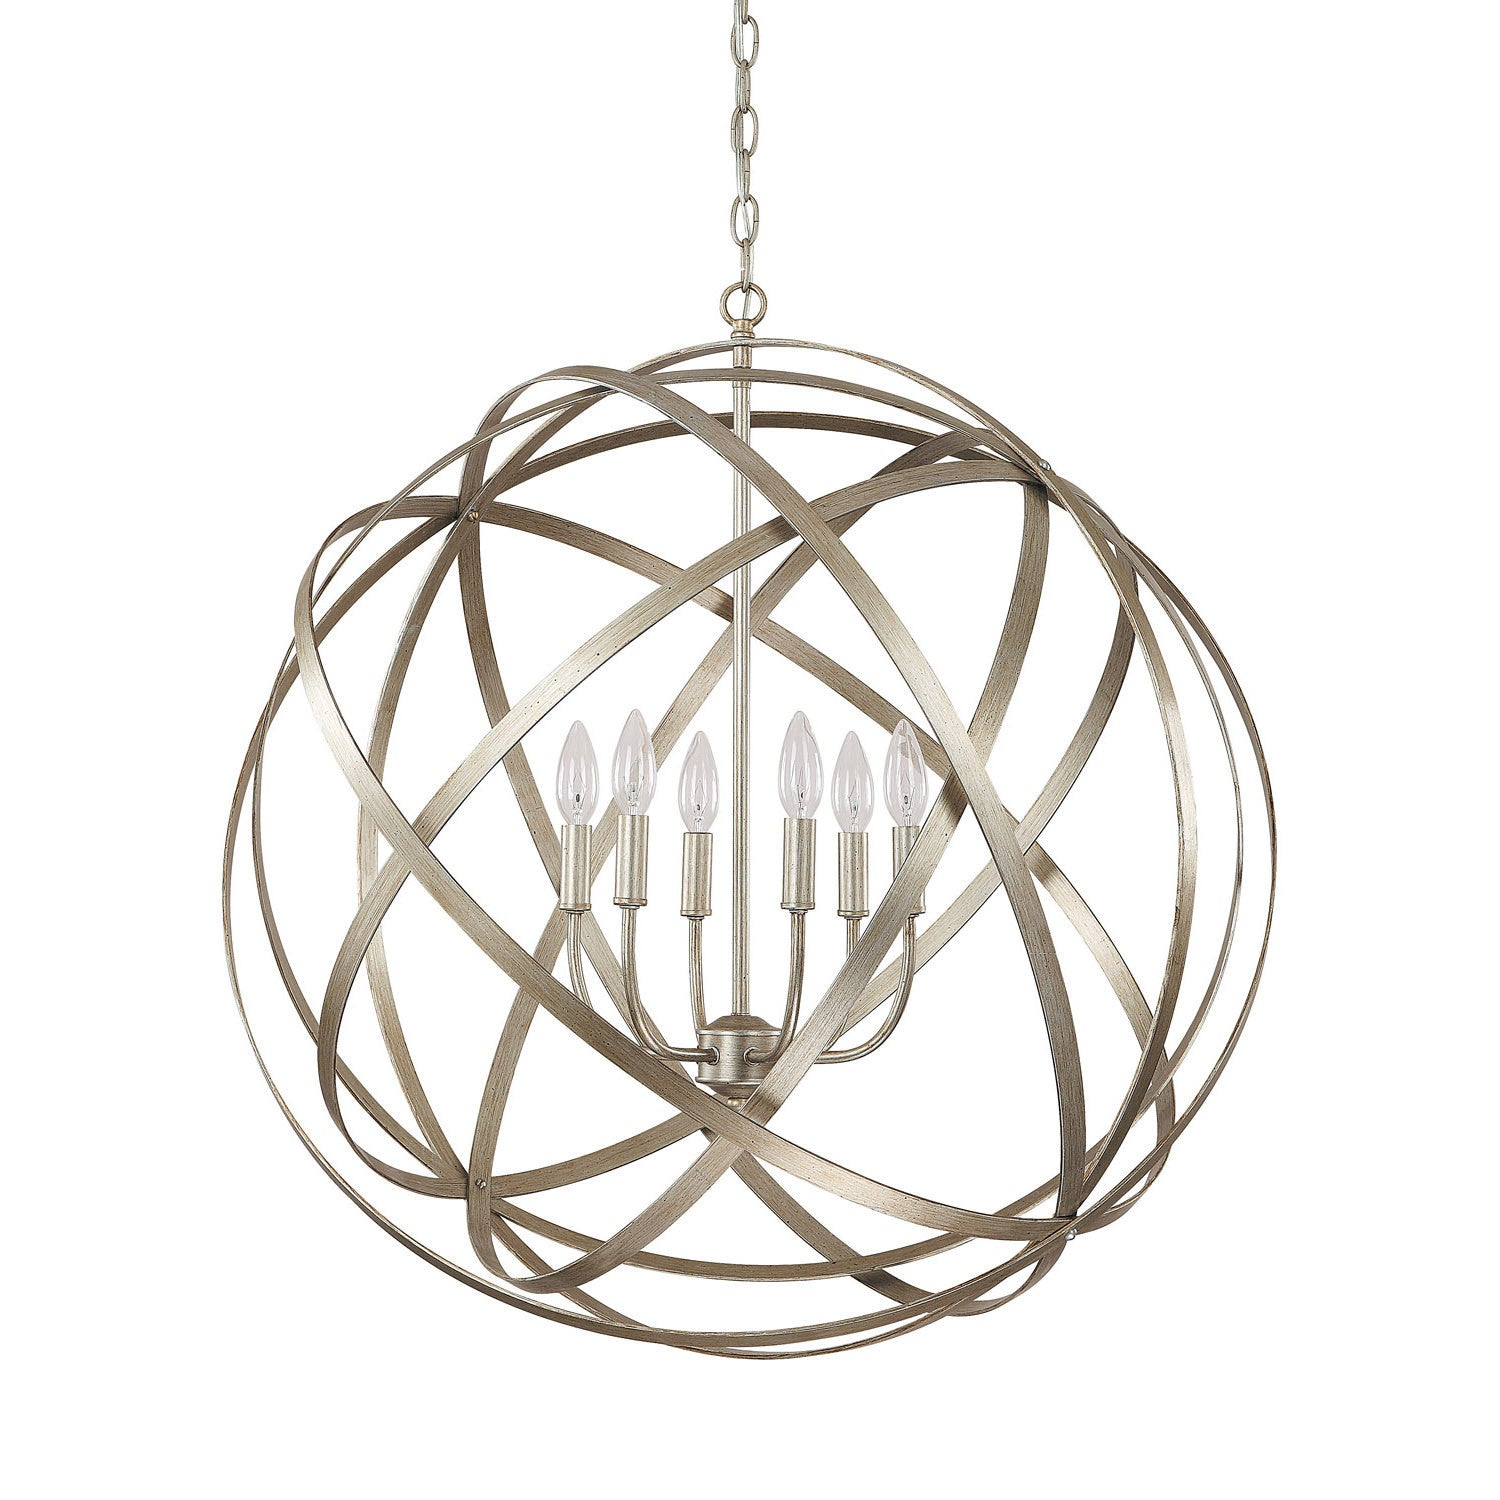 Axis 6 light orb chandelier in Winter Gold 4236WG